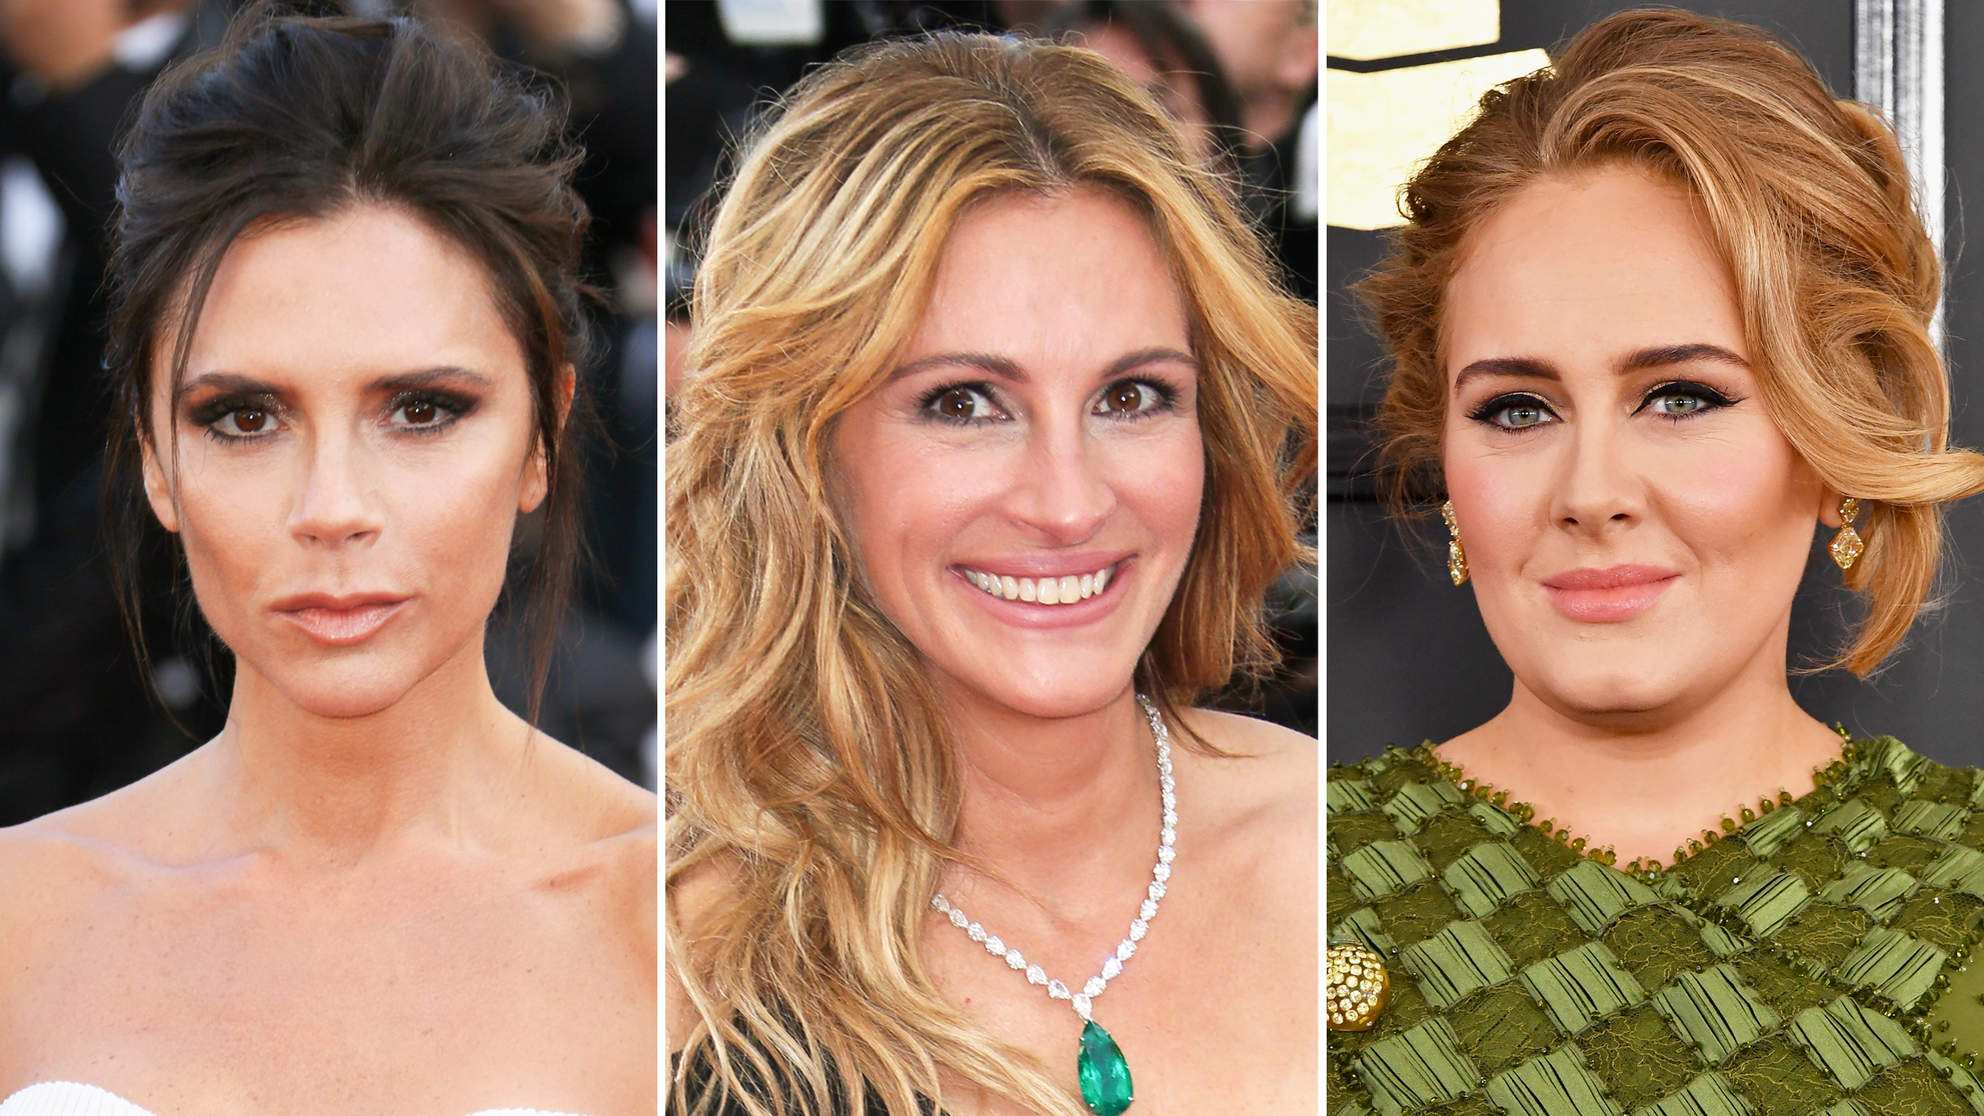 The Moisturizer Adele, Victoria Beckham, and Julia Roberts Are Obsessed With